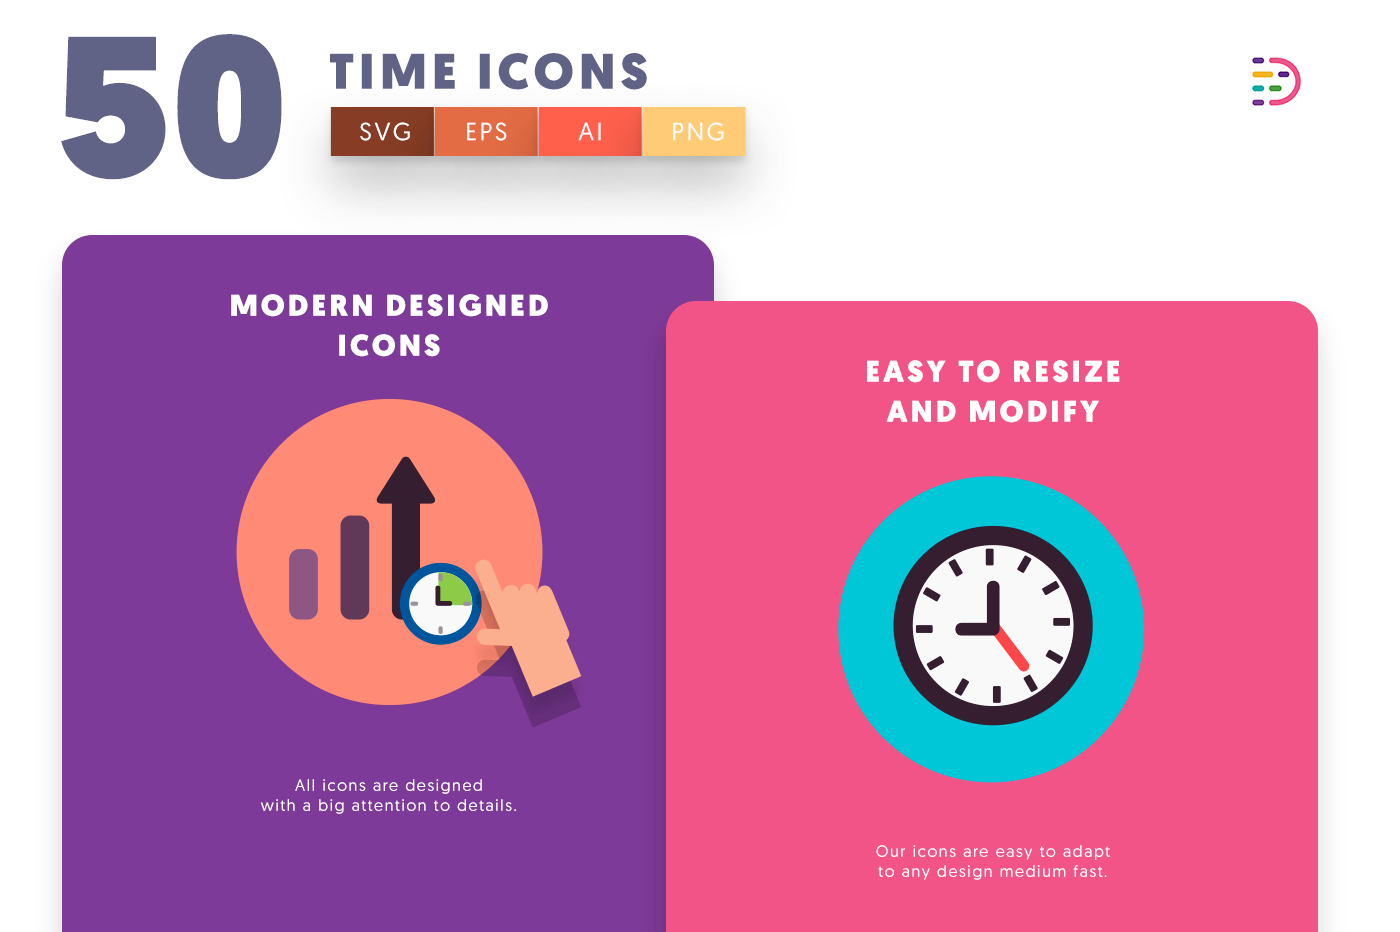 50 Time Flat Icons with colored backgrounds